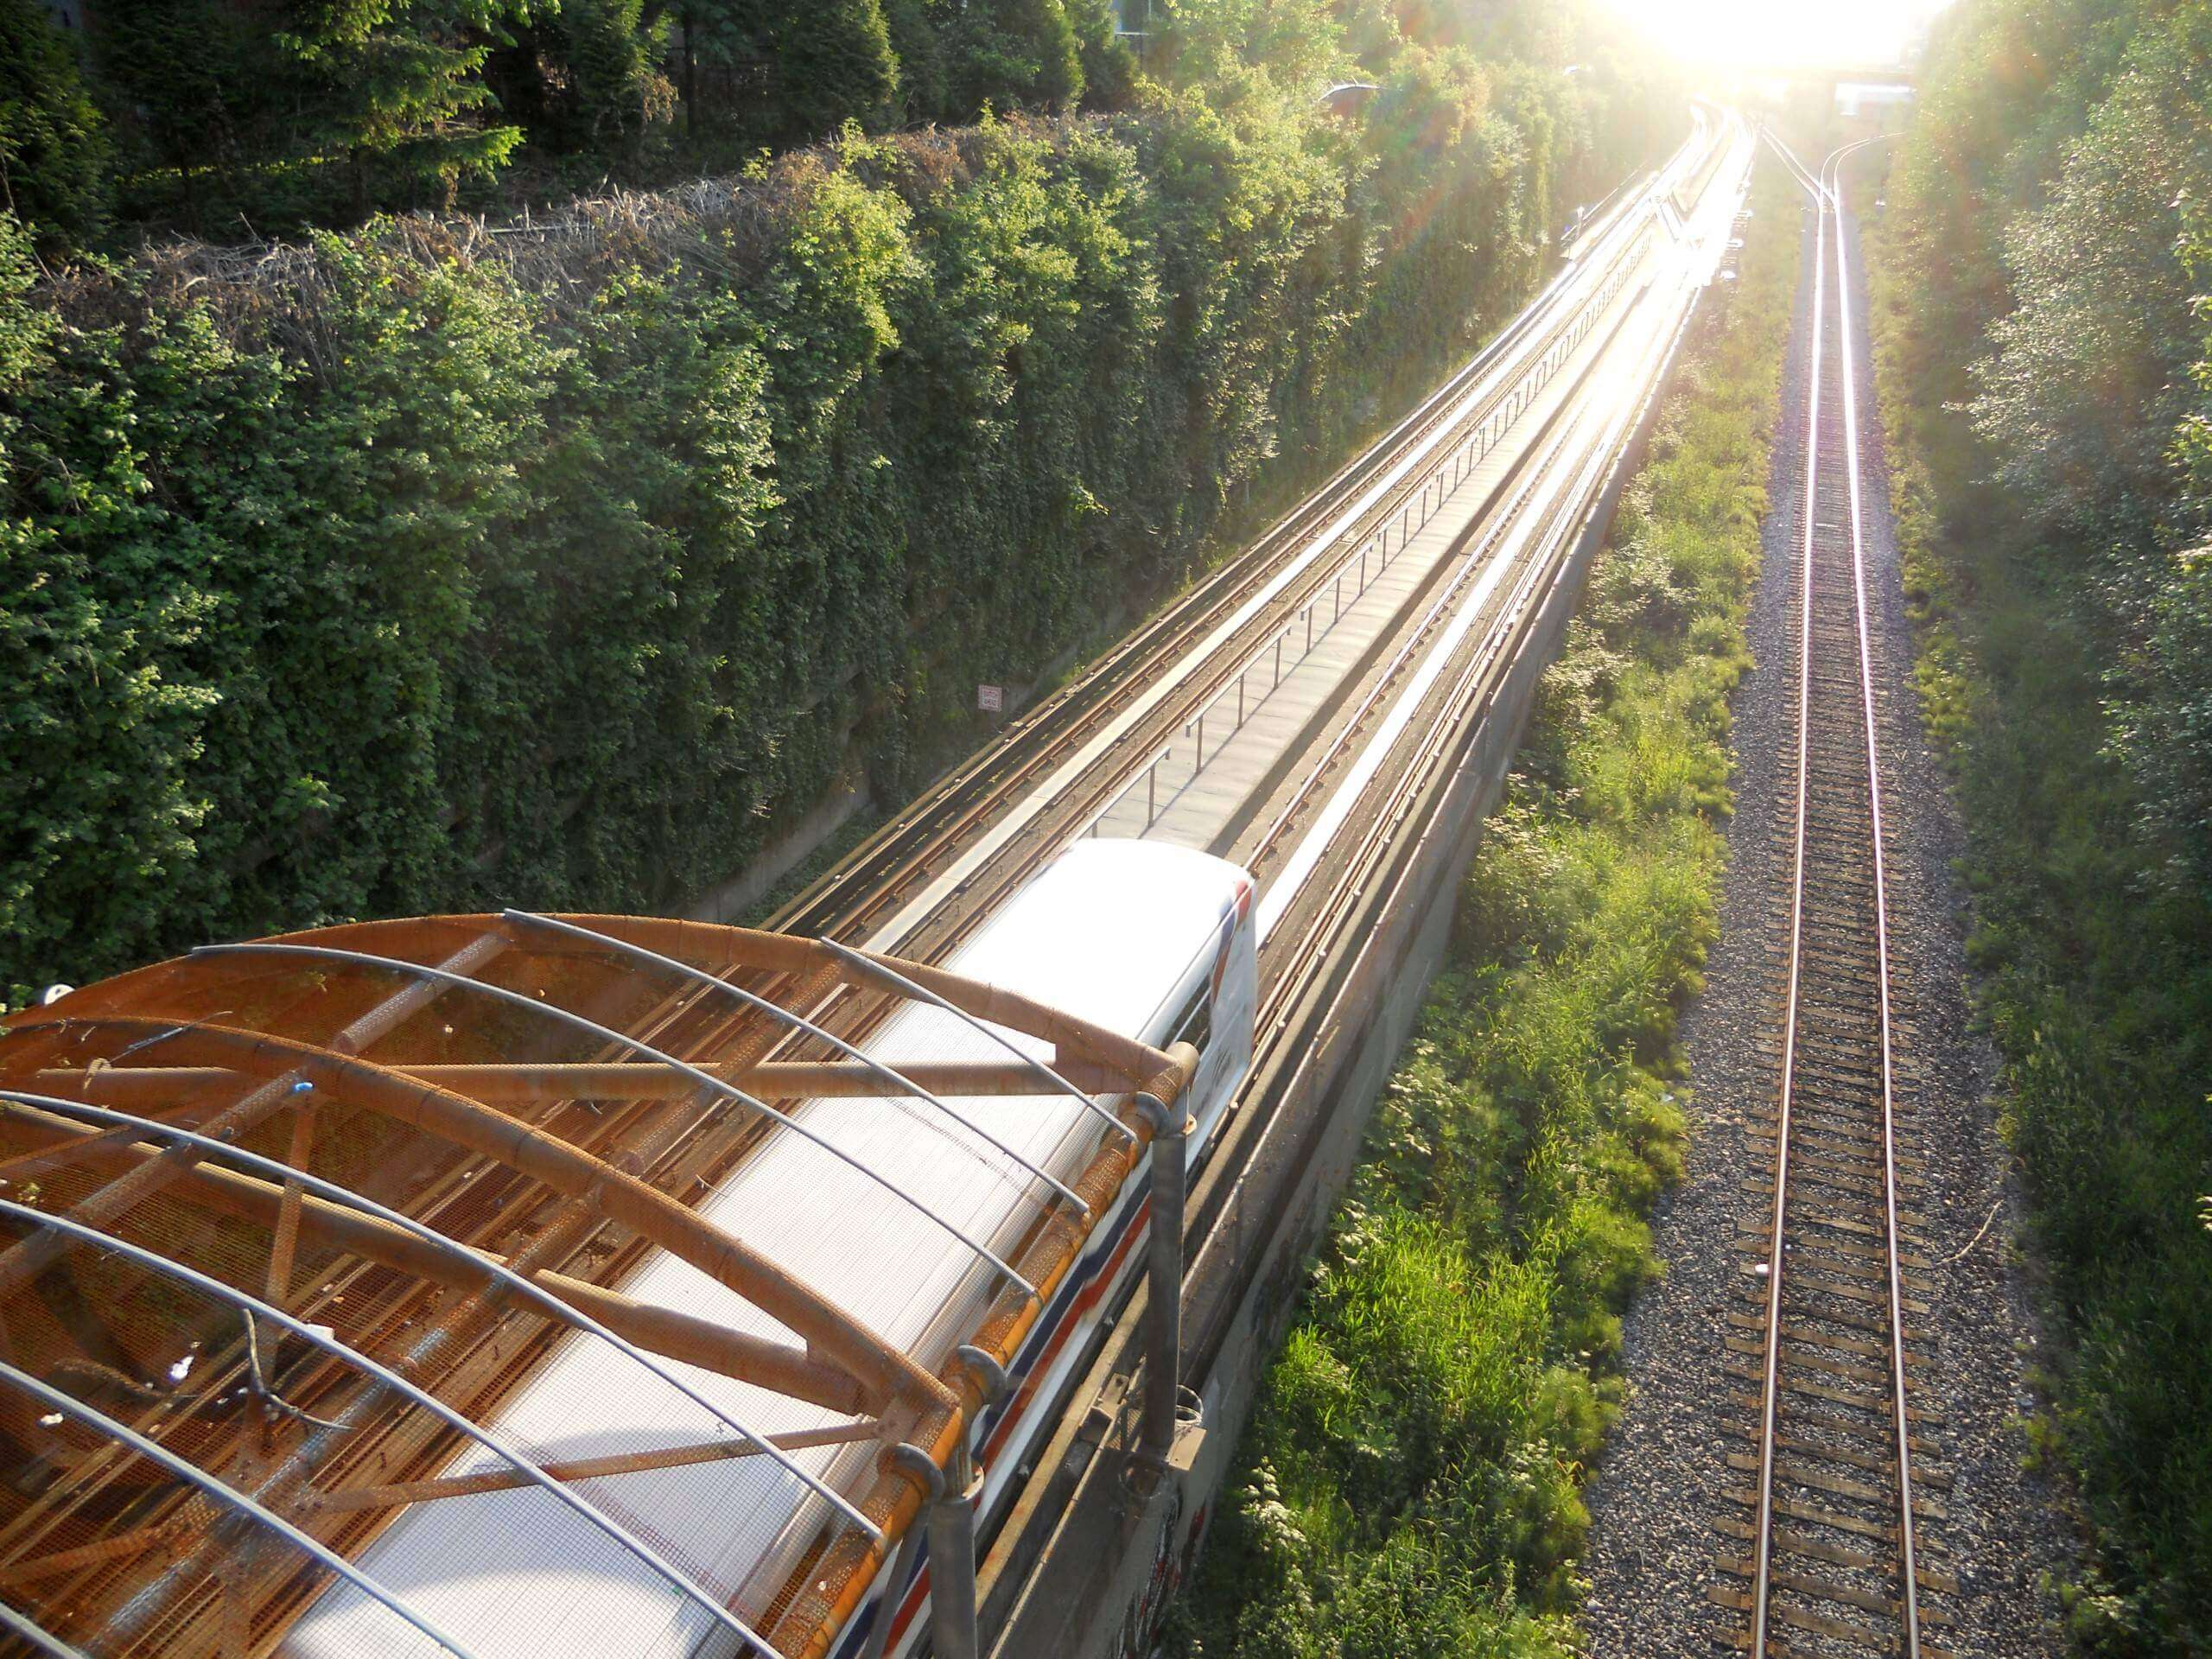 Long-held misconceptions about SkyTrain's technology debunked